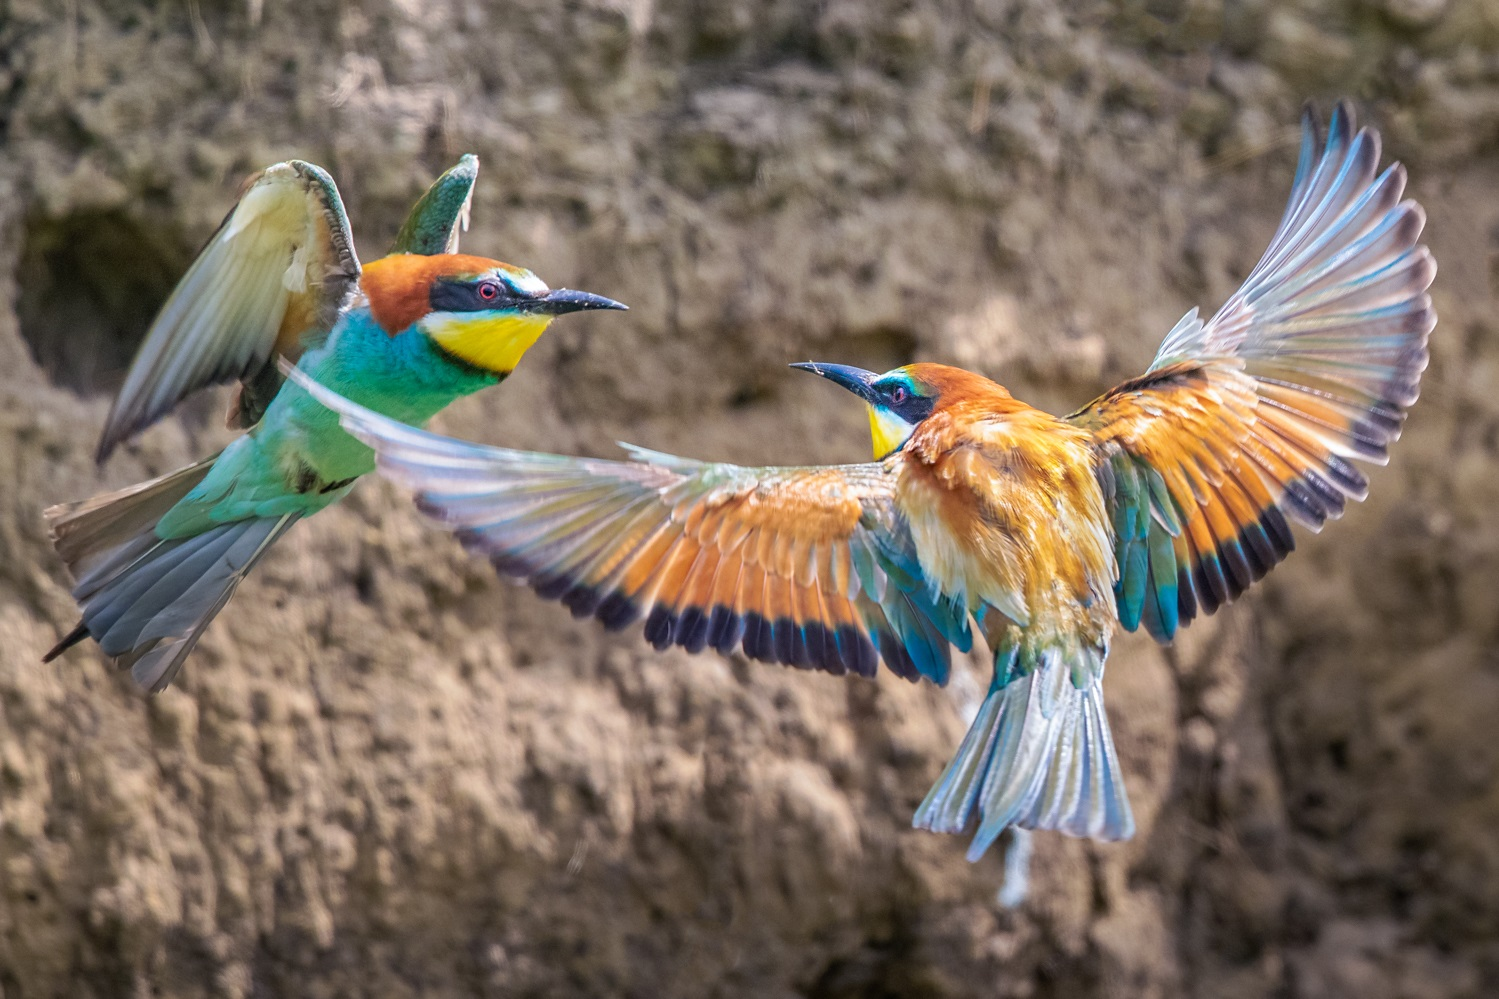 European Bee eaters fighting over a nest site, Hungary May 2019  1DX II, 500mm f/4 II + 1.4x III, 1/2500, f/7.1, ISO 2000, tripod with Uniqball head, pop-up hide